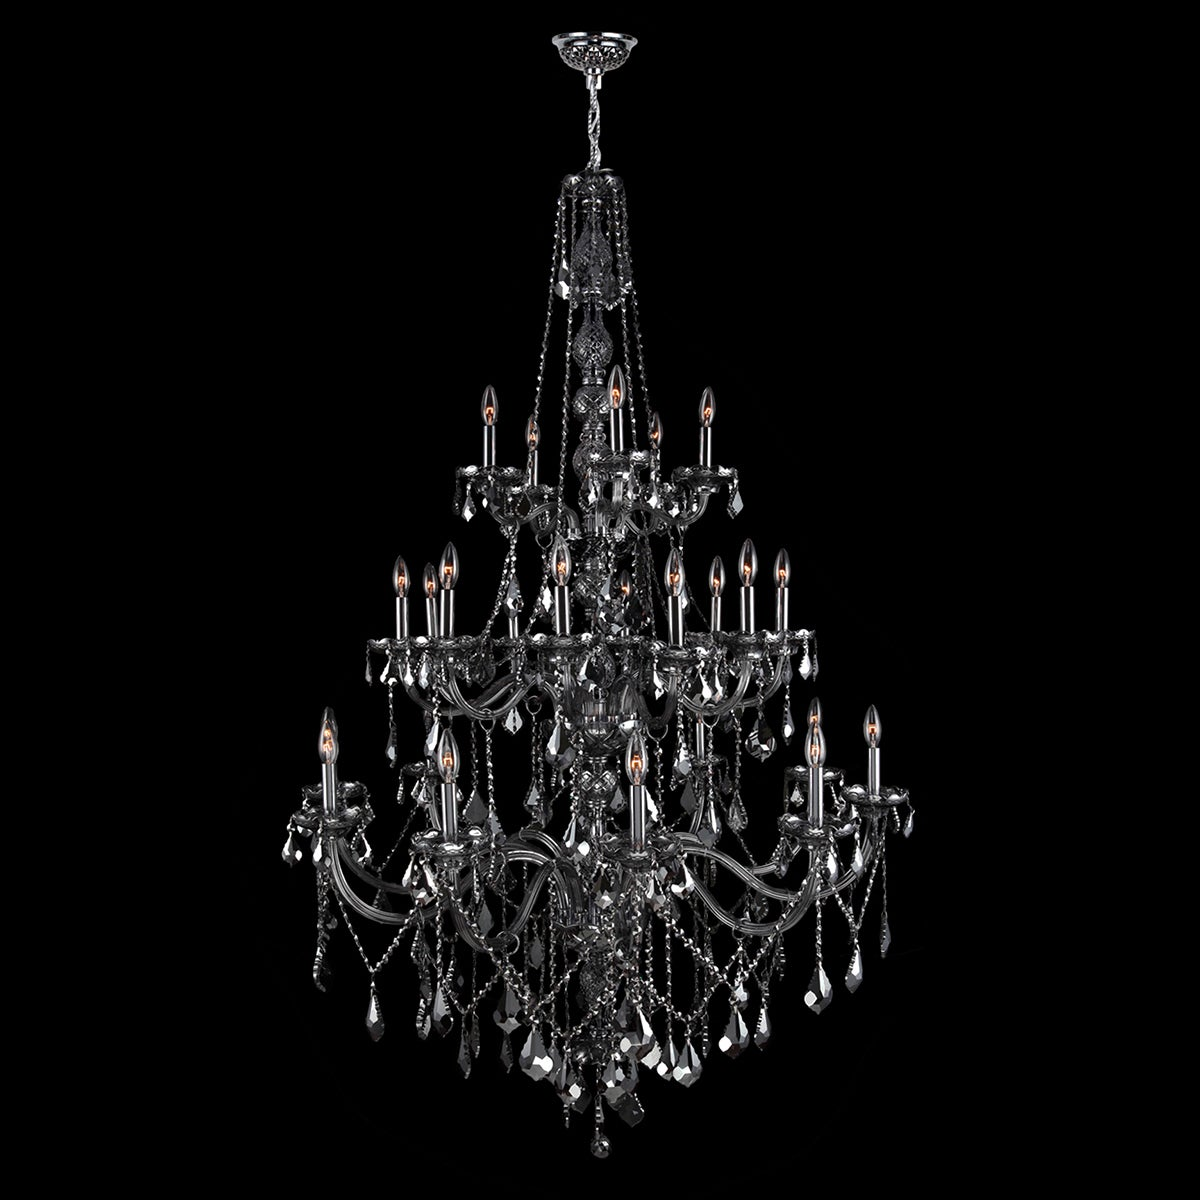 Provence collection 25 light chrome finish and smoke crystal provence collection 25 light chrome finish and smoke crystal chandelier free shipping today overstock 17291901 mozeypictures Choice Image